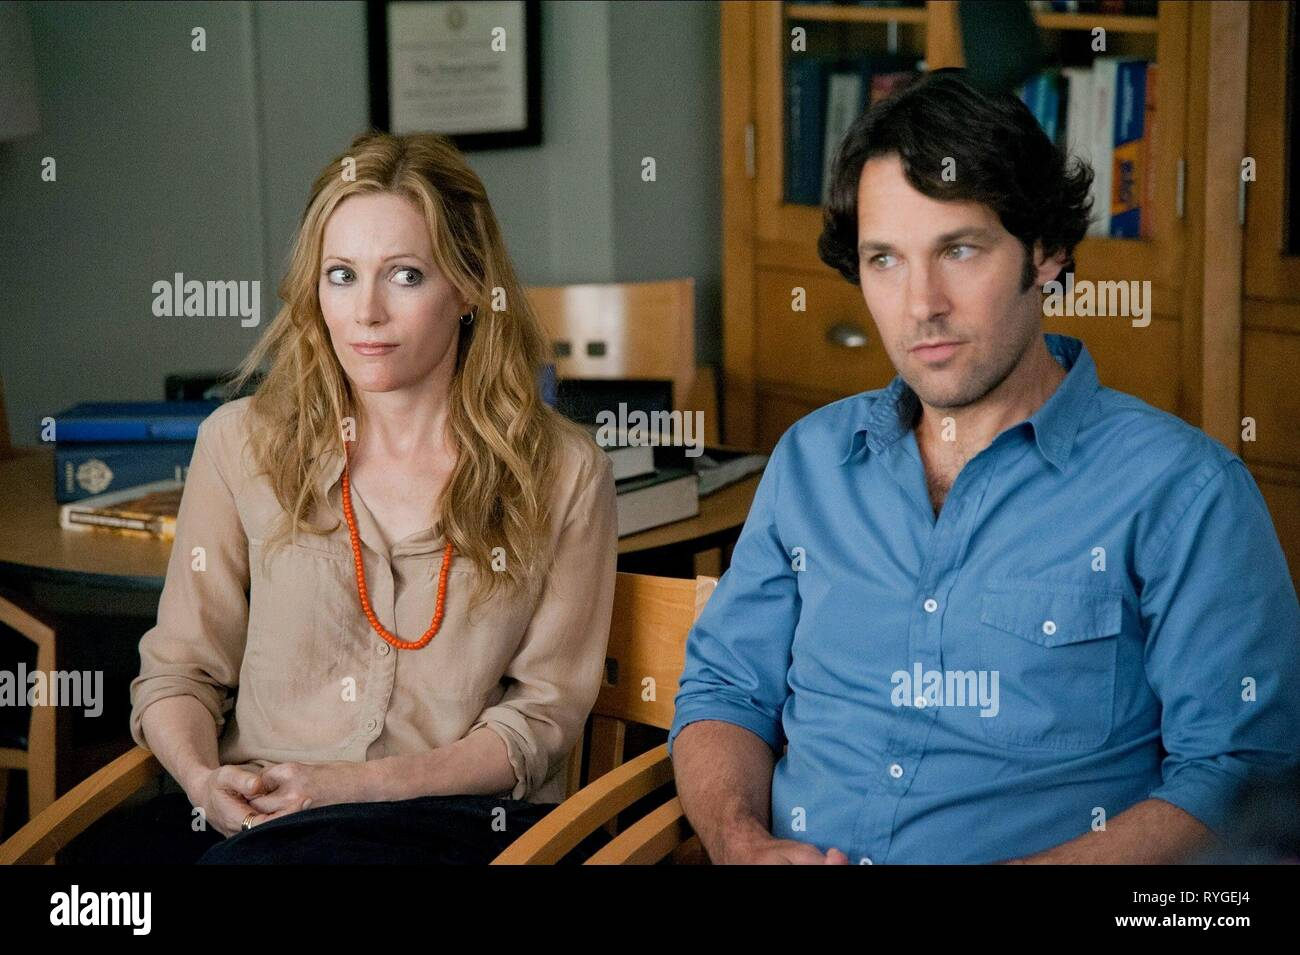 LESLIE MANN, PAUL RUDD, THIS IS 40, 2012 - Stock Image